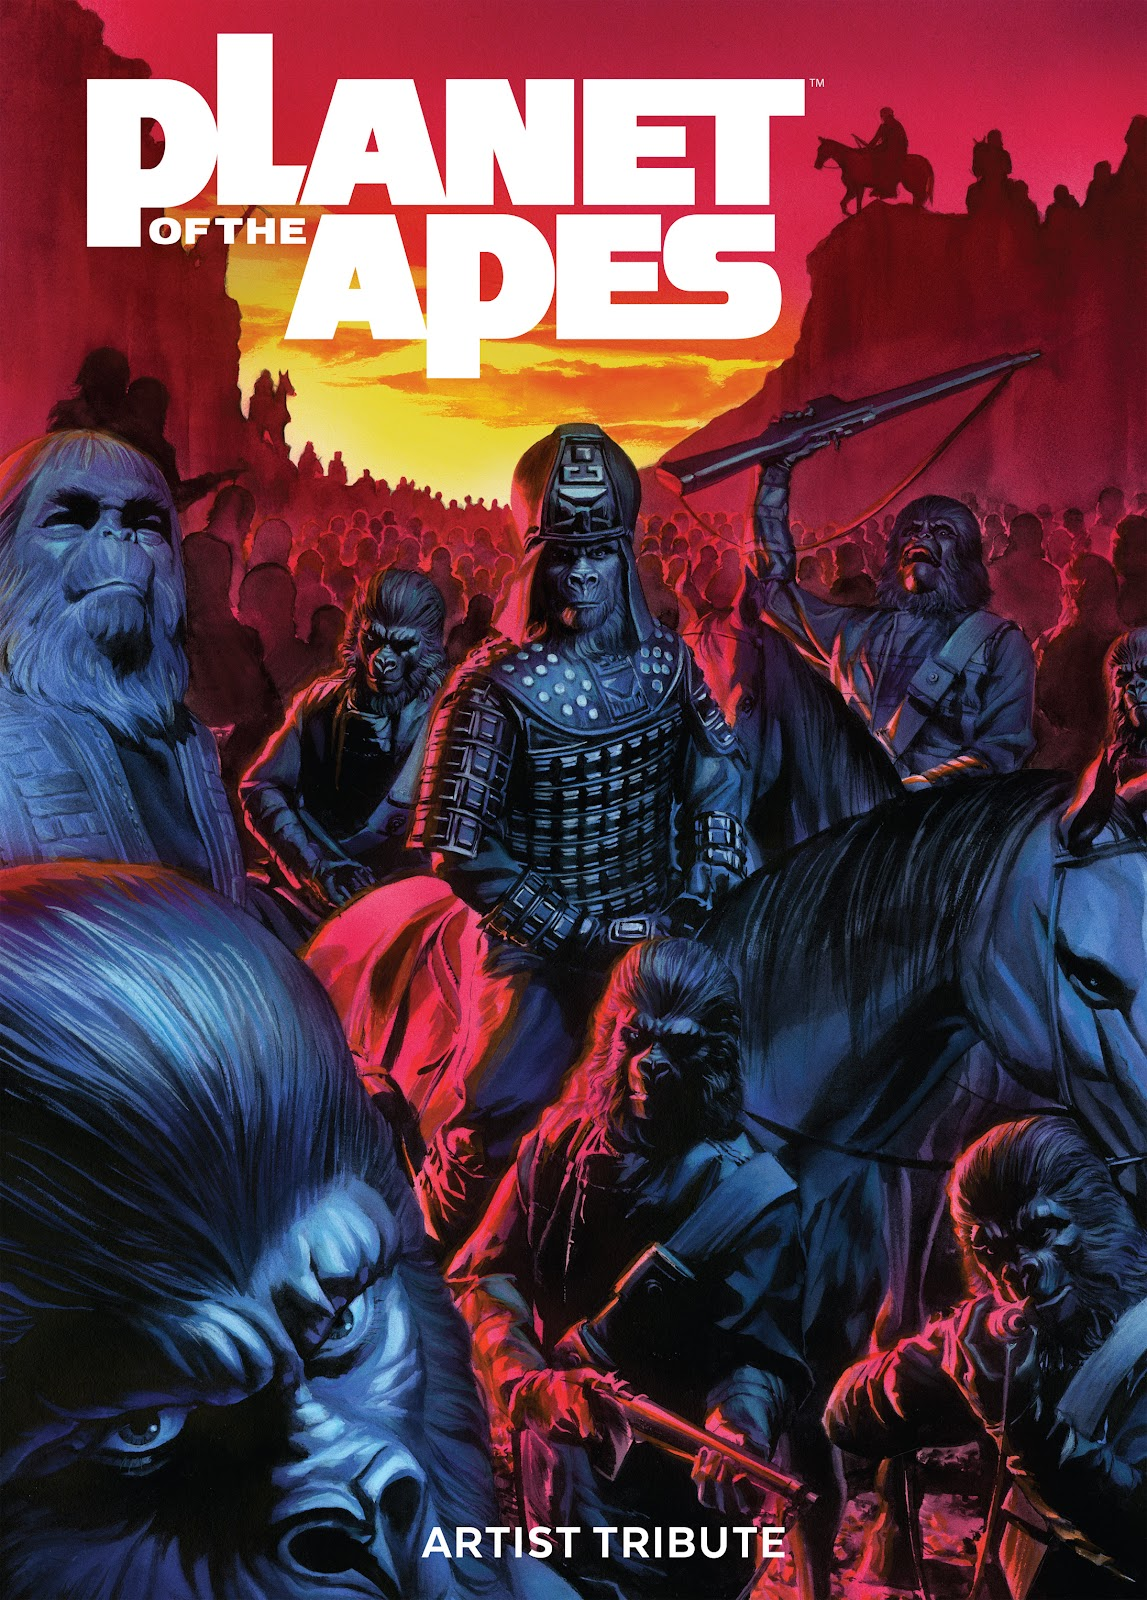 Read online Planet of the Apes Artist Tribute comic -  Issue # TPB - 1